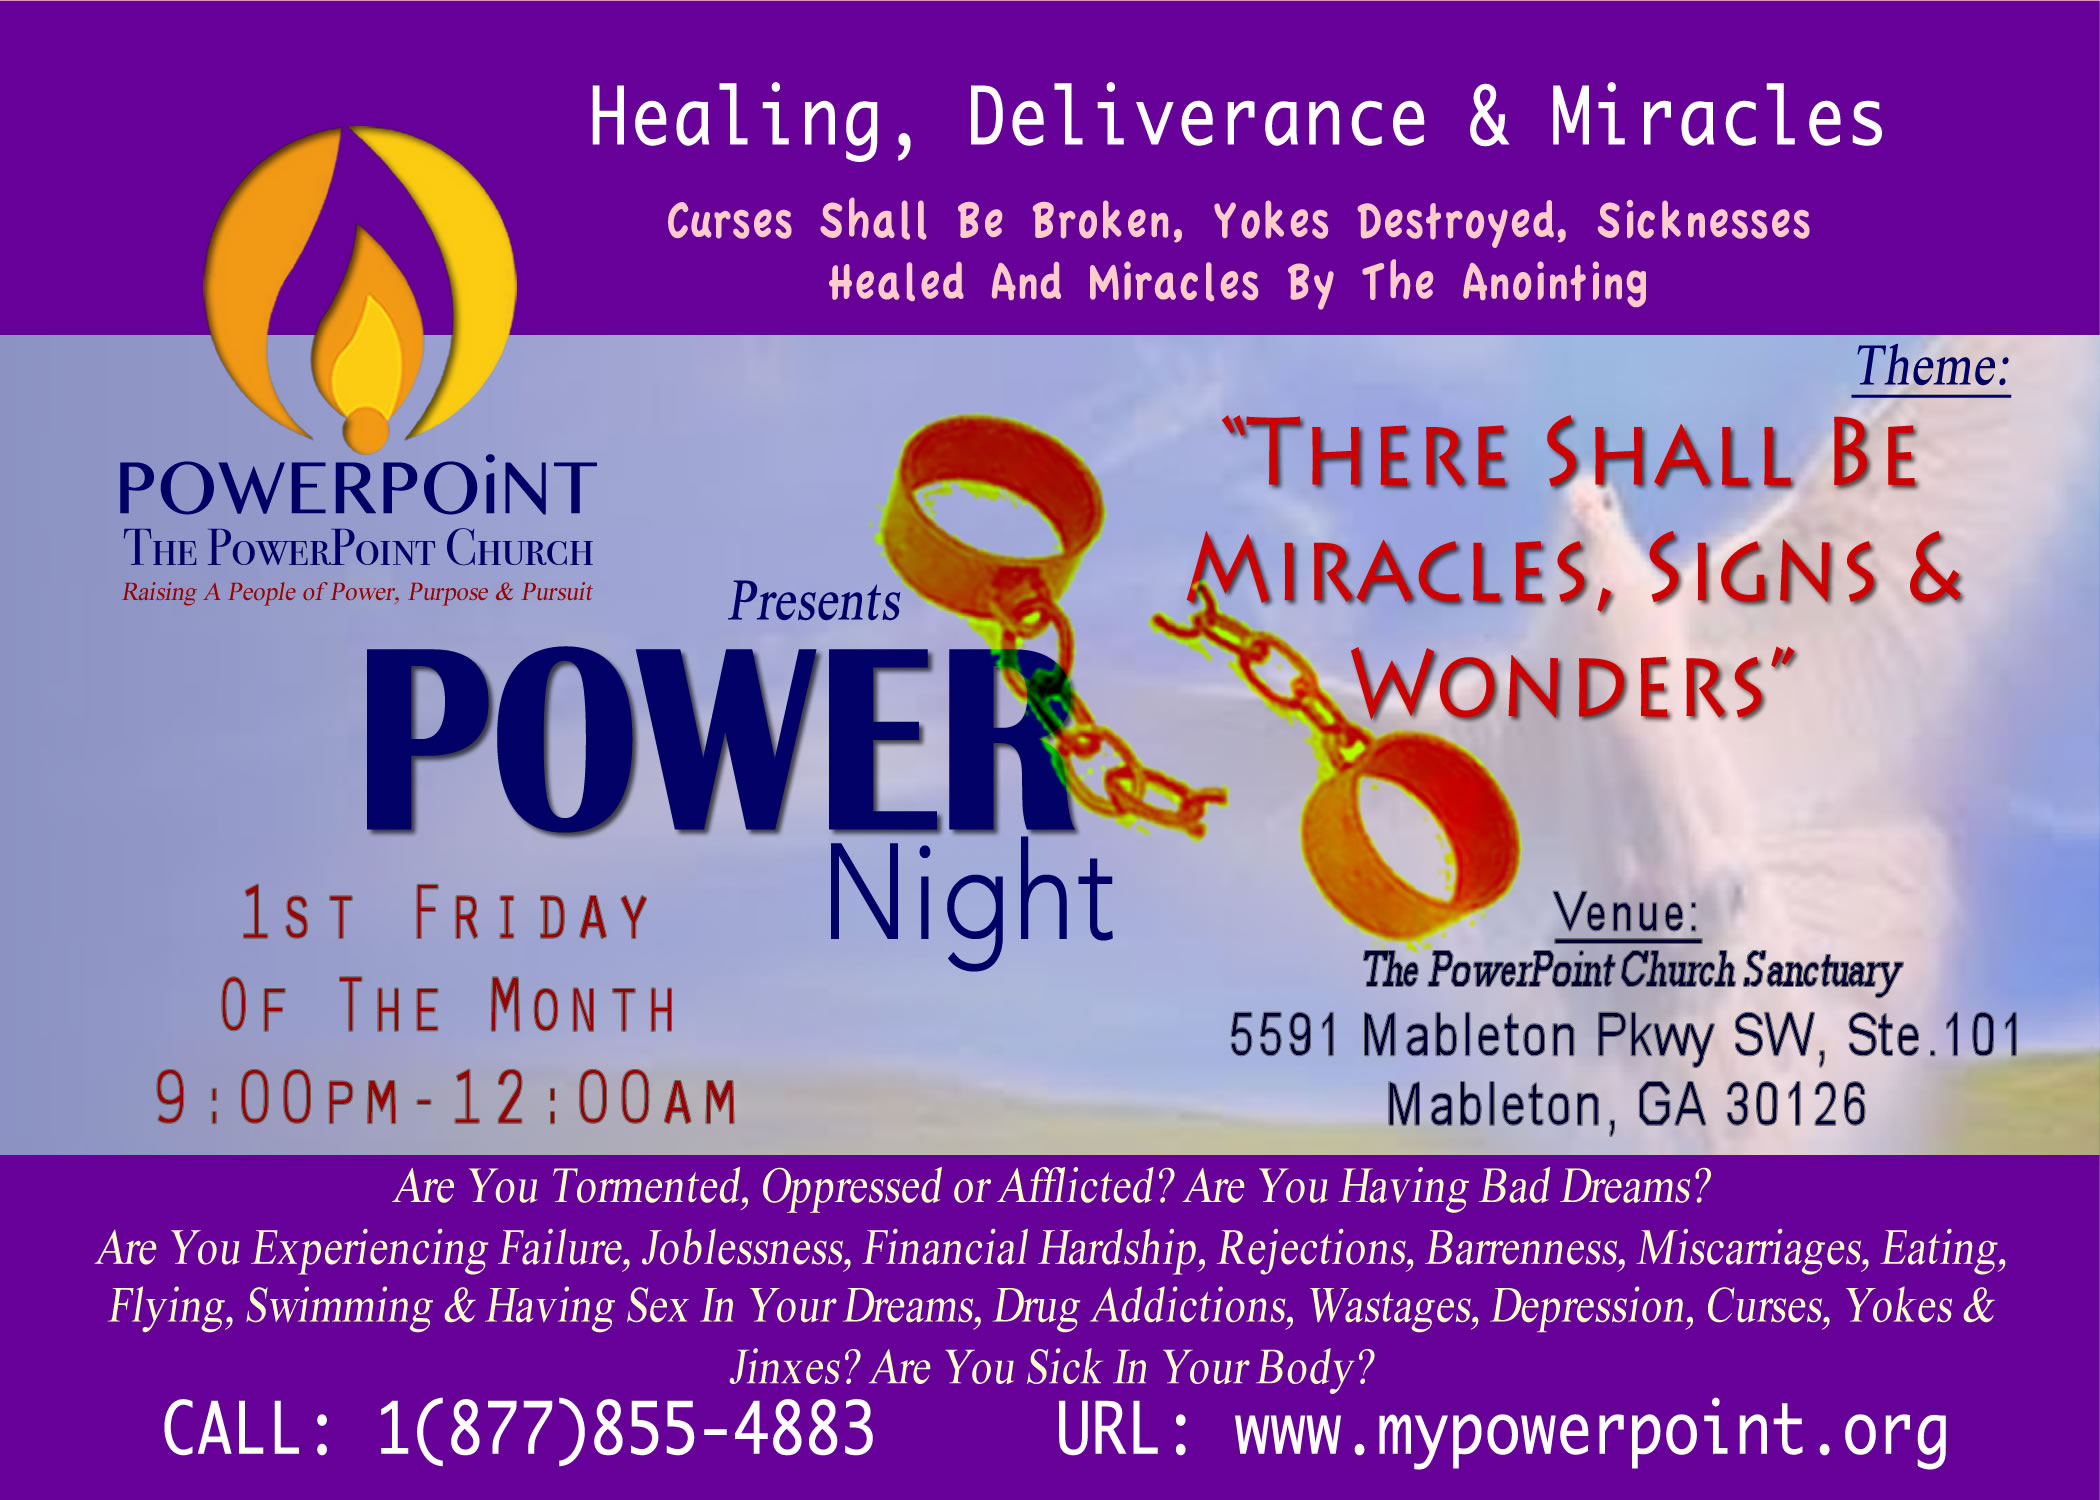 POWER Night of Healing, Deliverance & Miracles